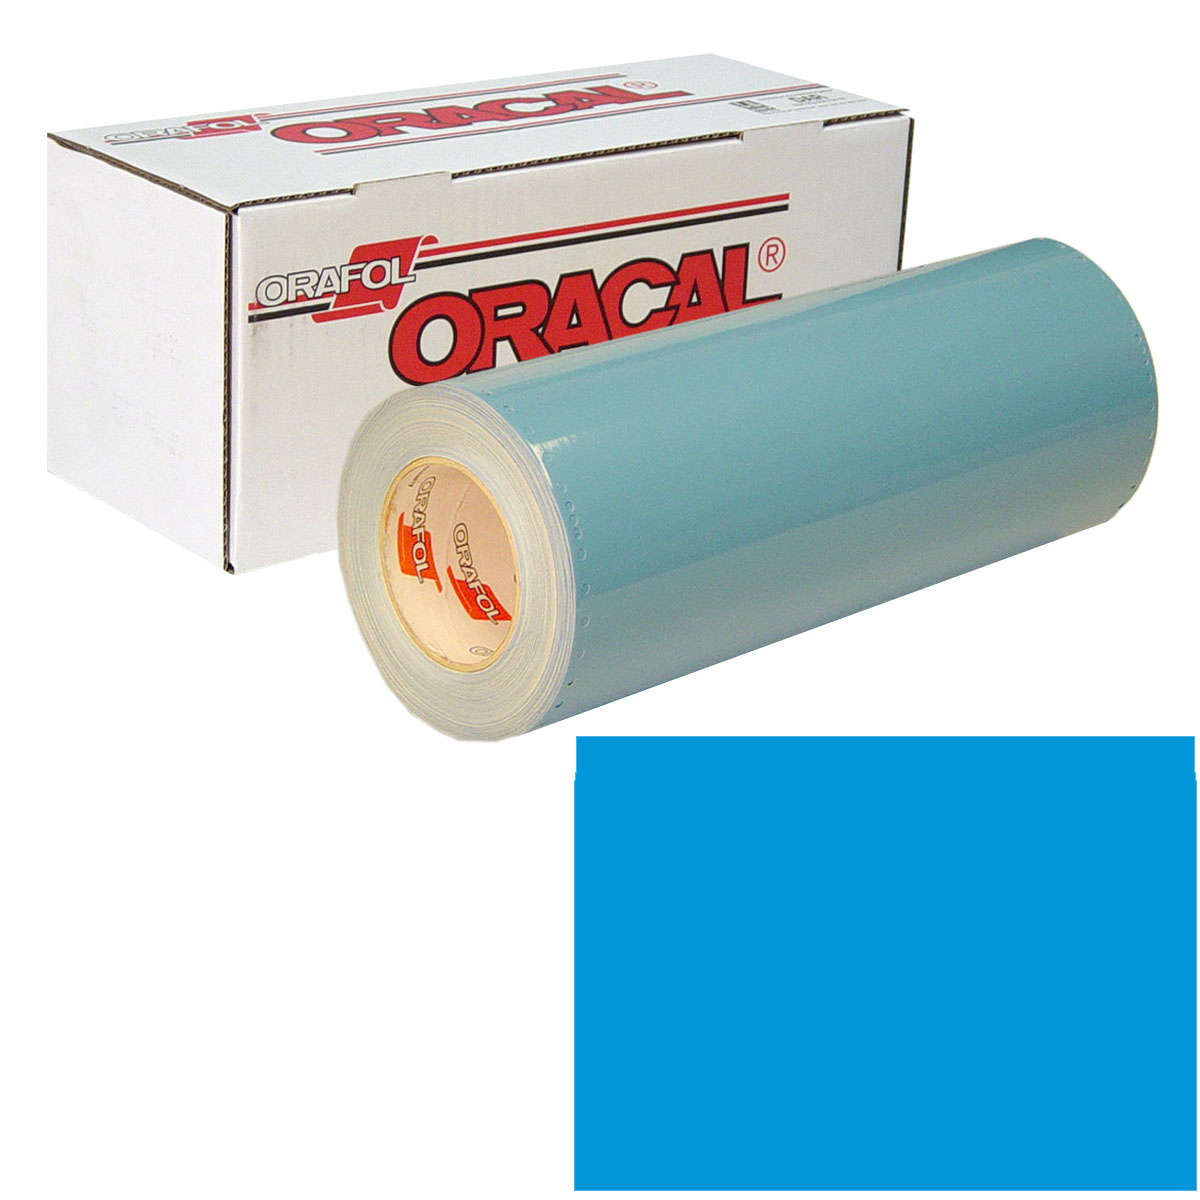 ORACAL 751 15In X 10Yd 052 Azure Blue